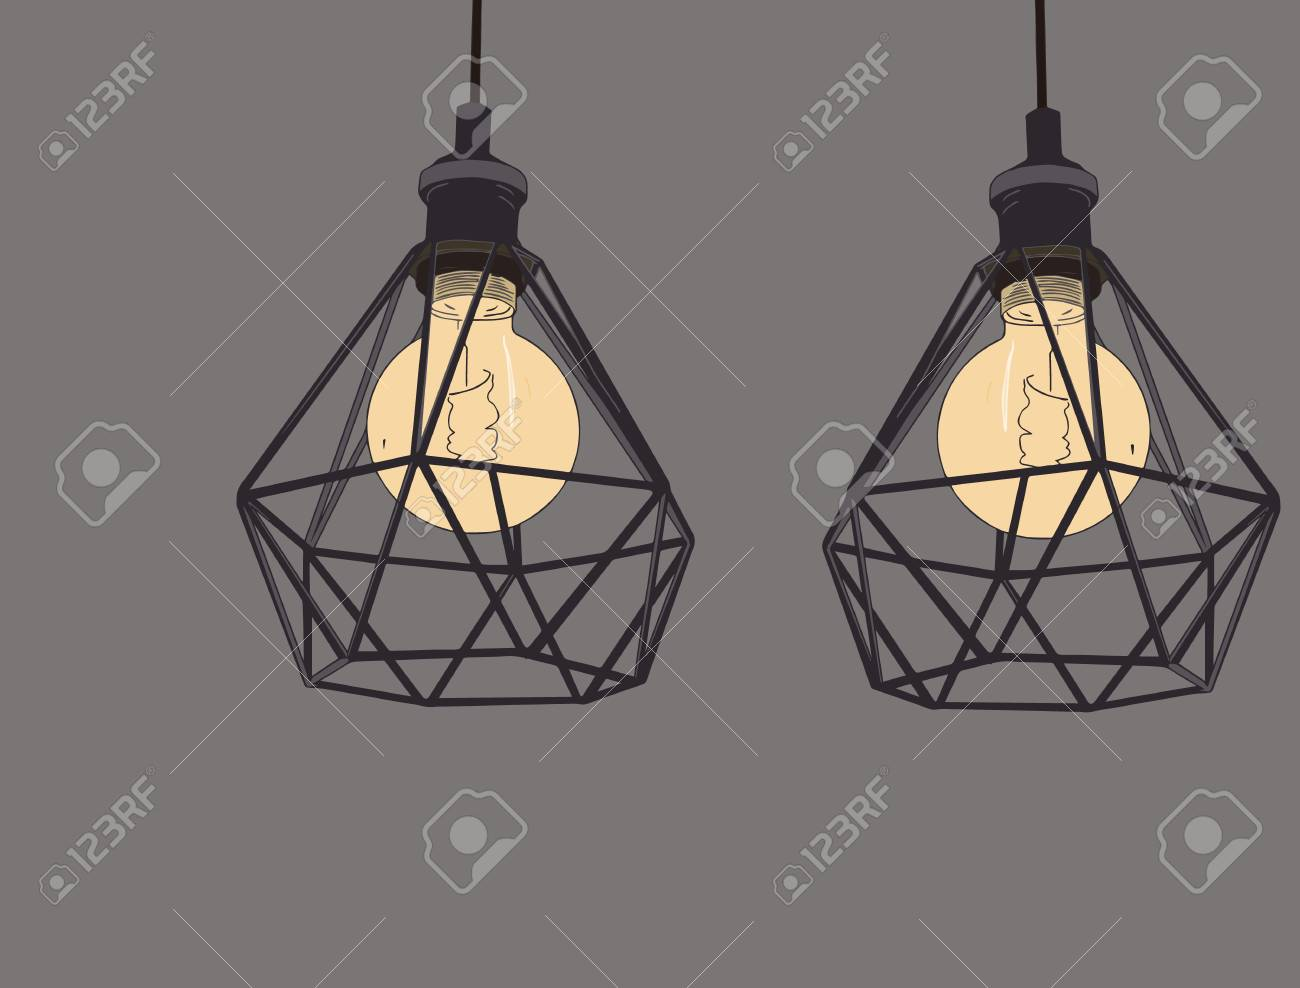 Collection Of Vintage Symbols Light Bulbs And Lamps Edison Light